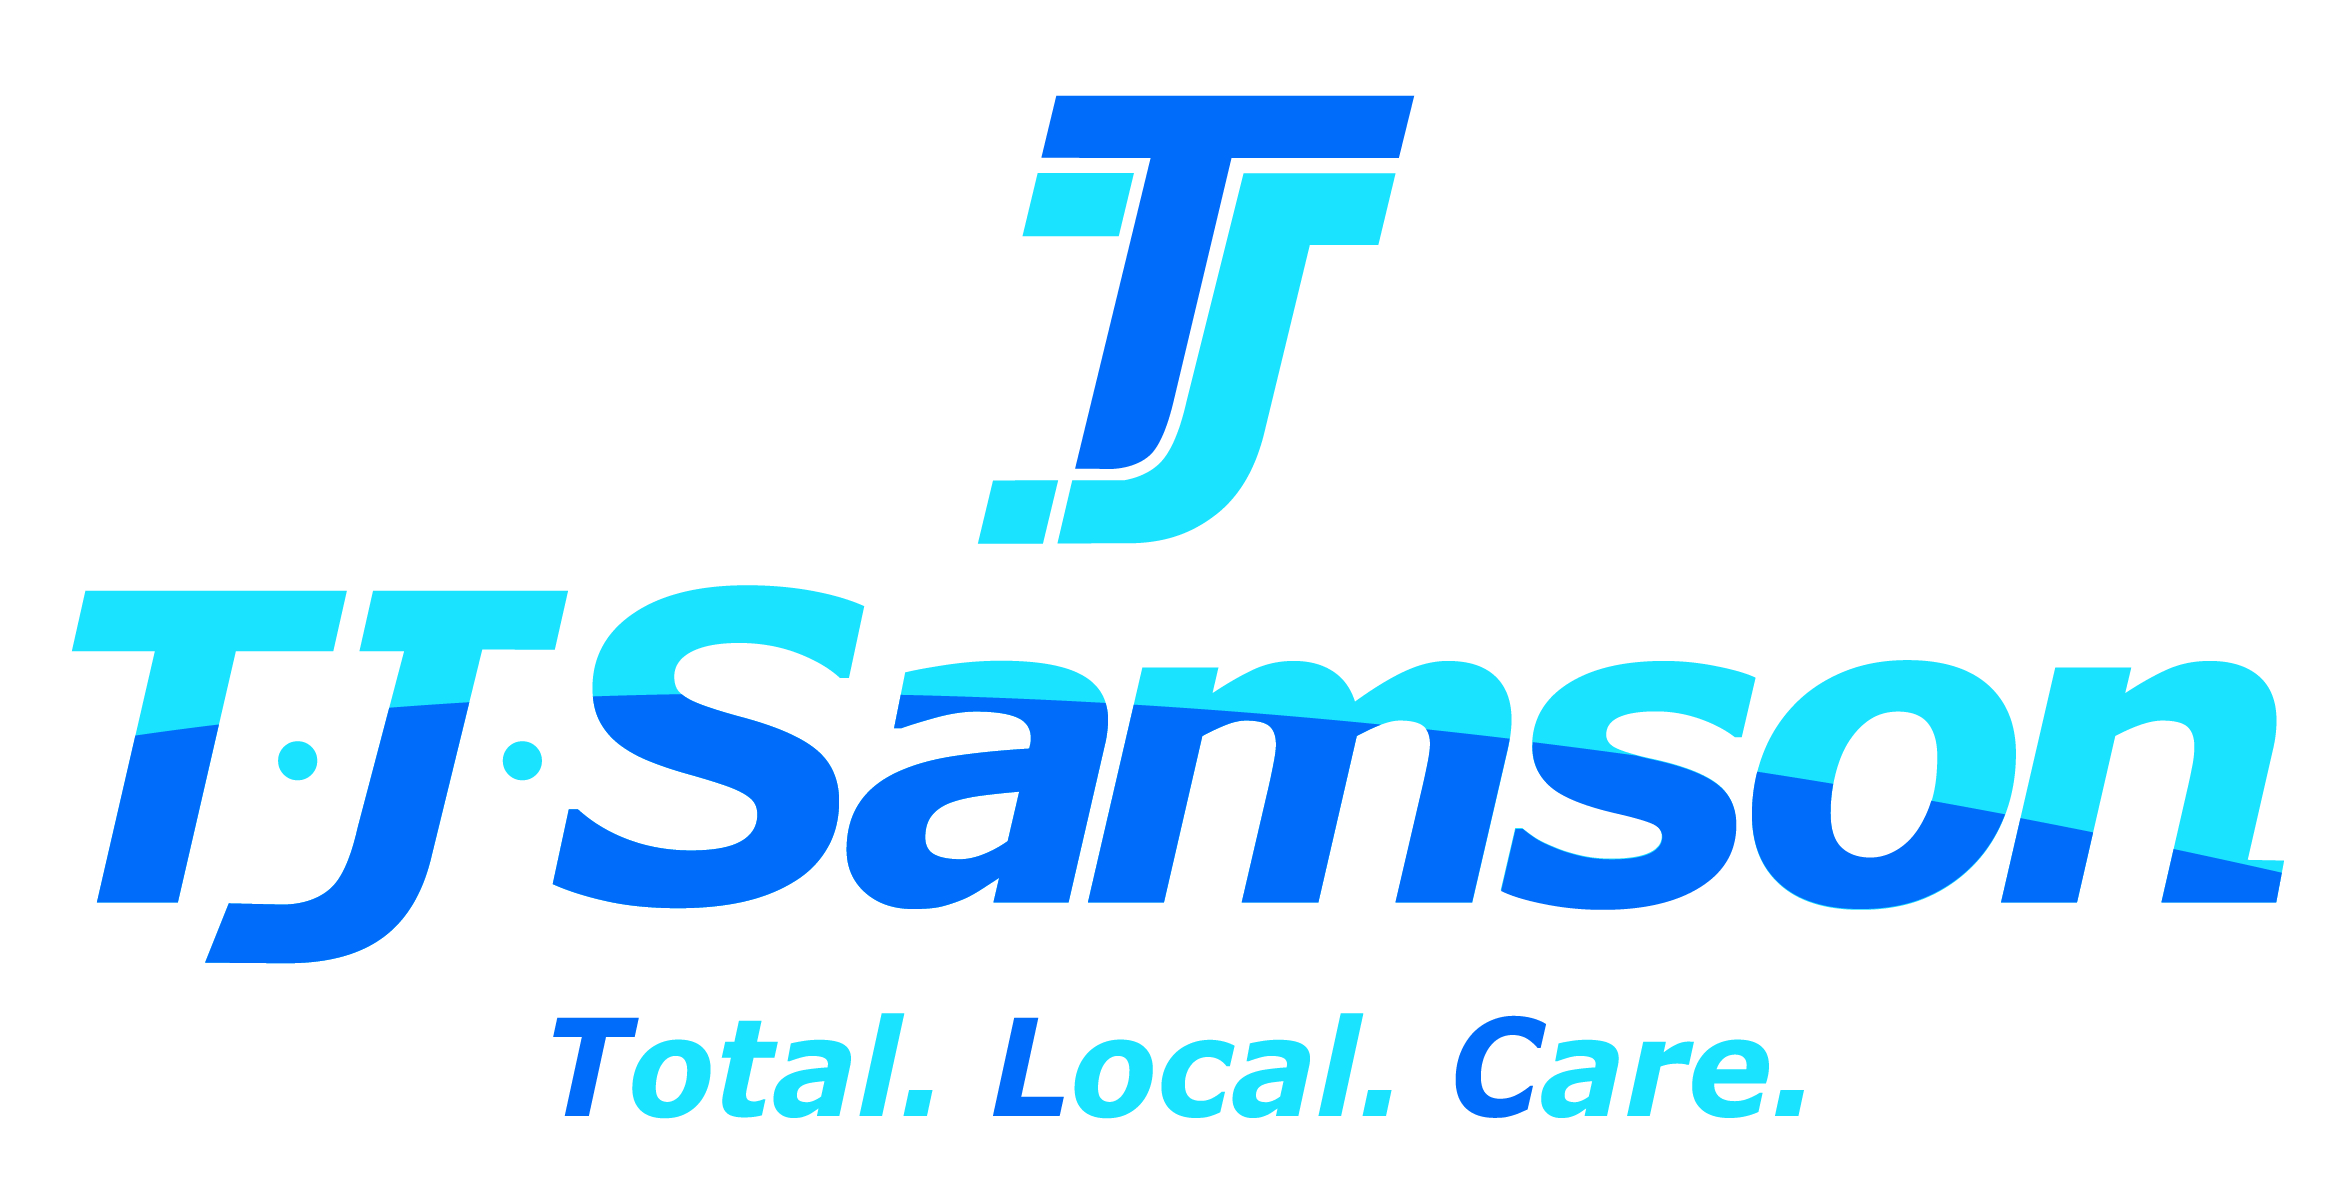 Gastroenterologist with Growing Independent Hospital in Southeast U.S. - TJ Samson Community Hospital